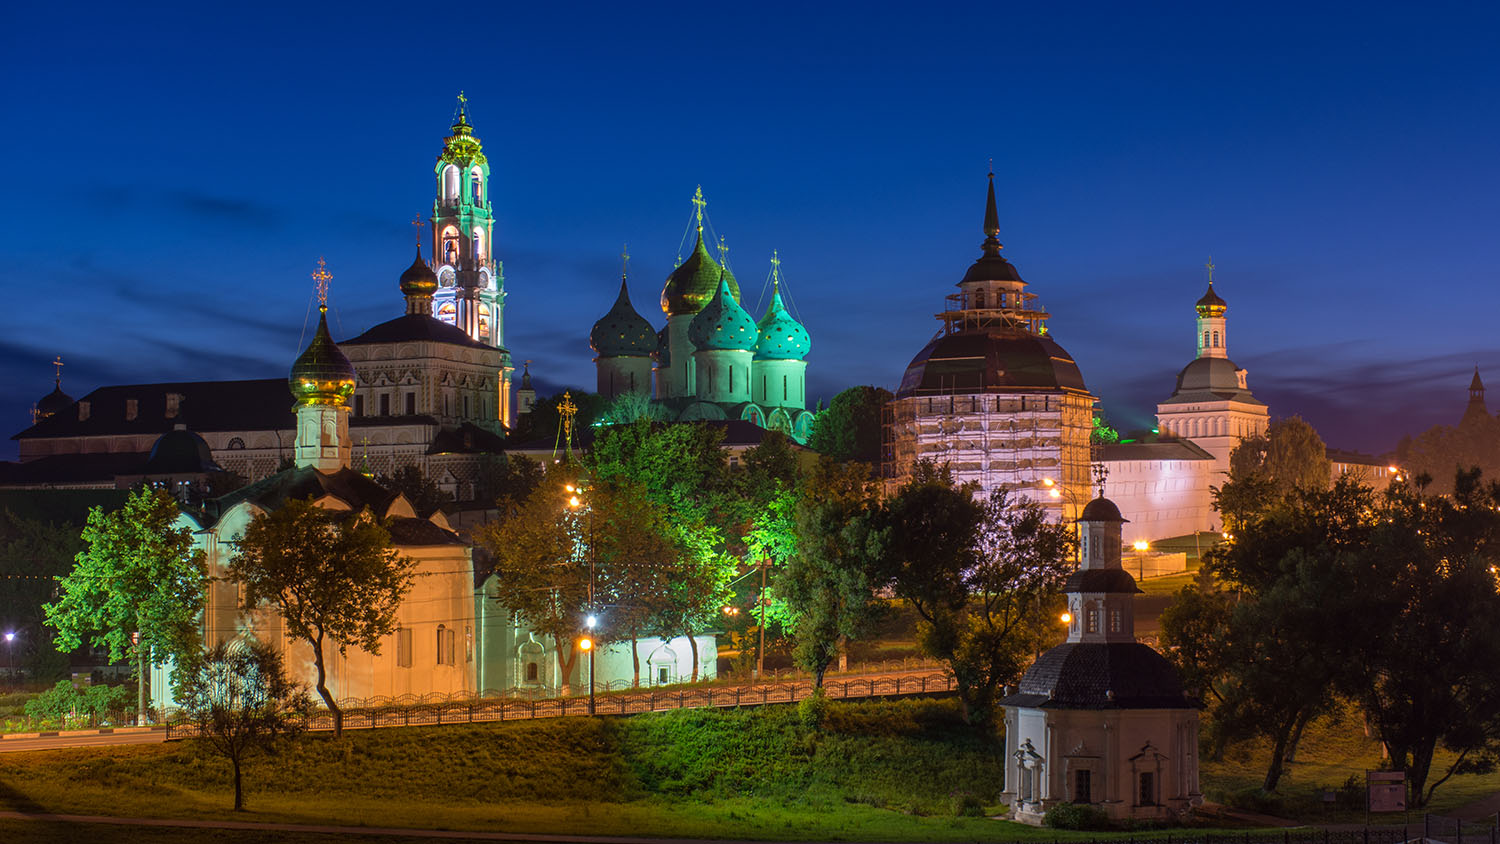 UNESCO World heritage site review: Architectural Ensemble of the Trinity Sergius Lavra in Sergiev Posad